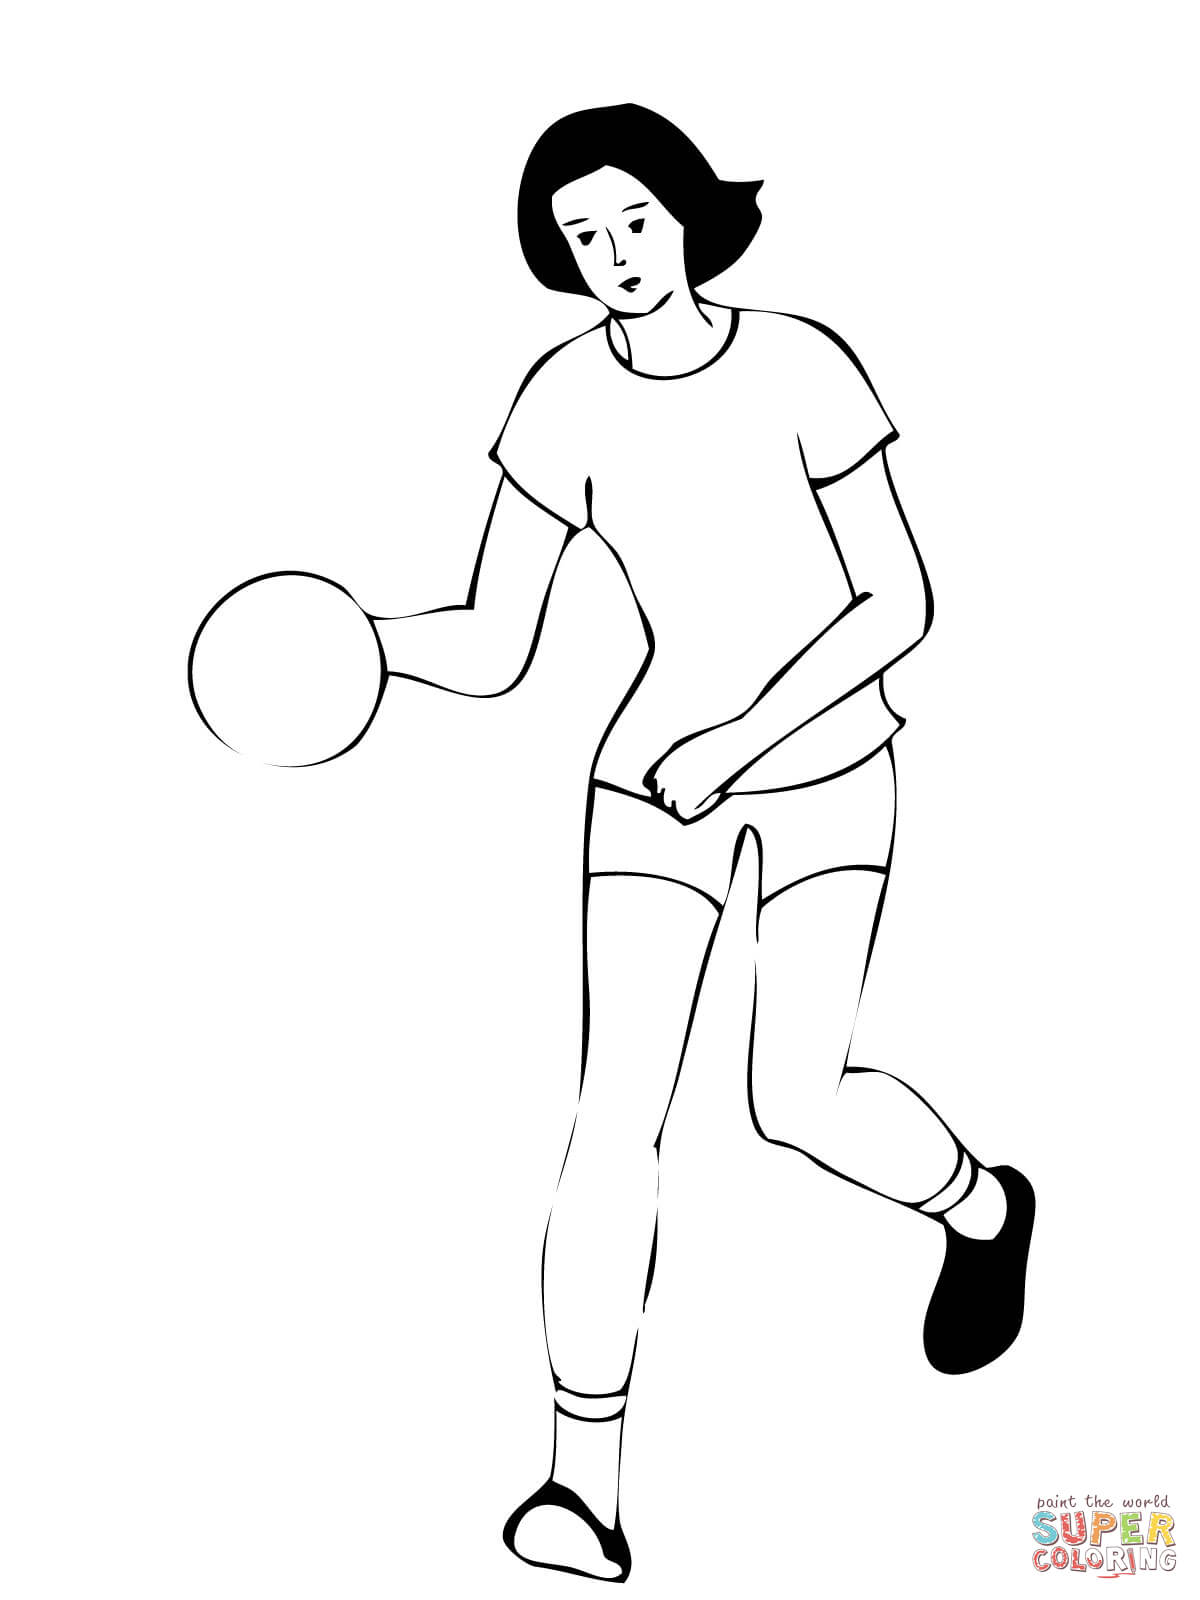 Coloring pages for softball - Softball Players Coloring Page Free Printable Coloring Pages